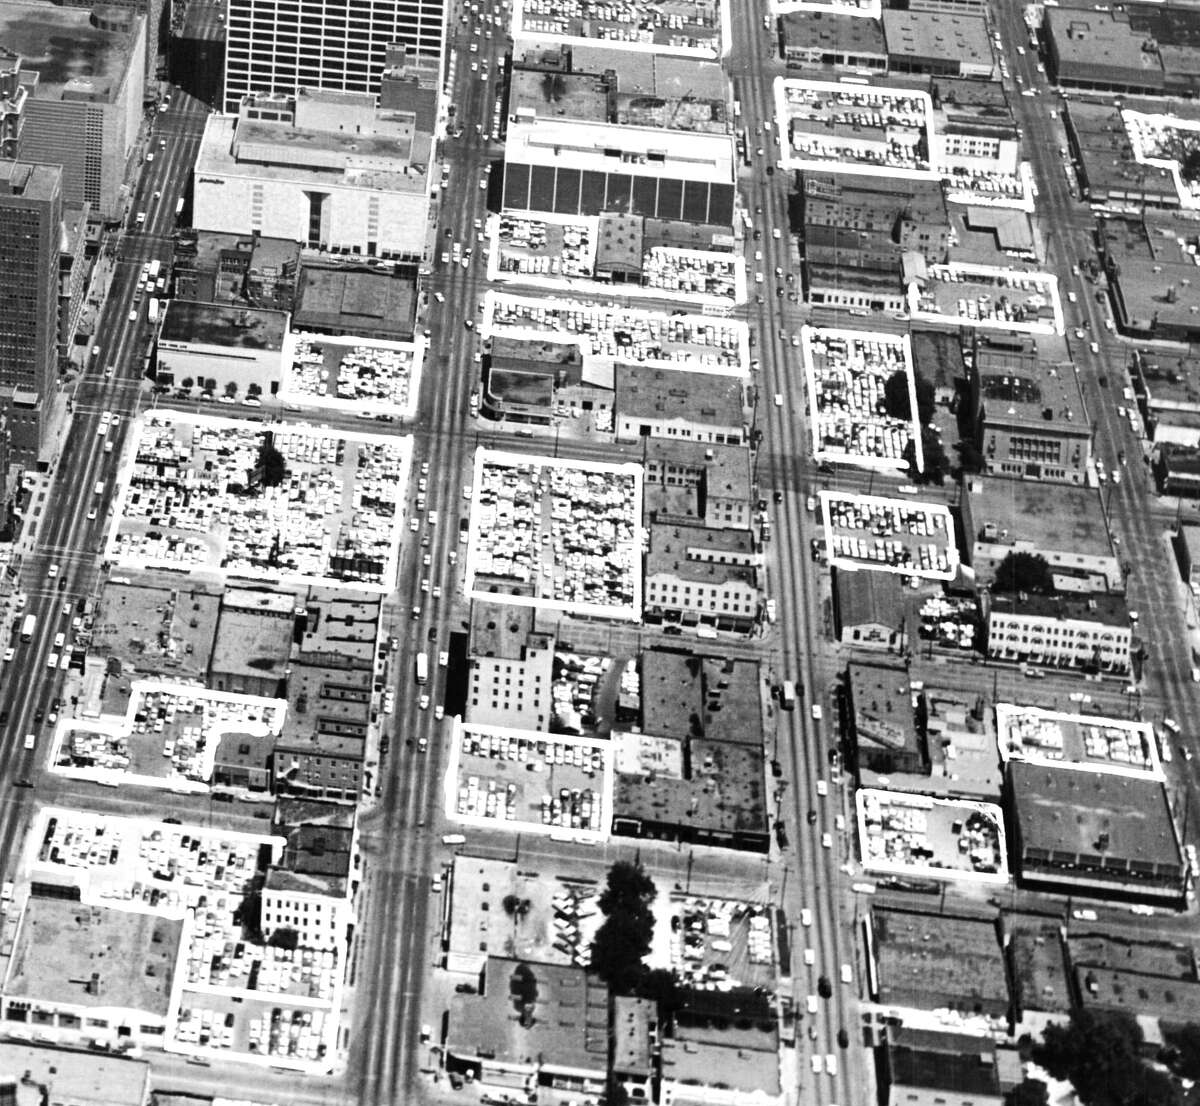 May 1961: Aerial view of downtown Houston shows location of parking lots in white boxes. Downtown Houston liberally sprinkled with parking lots. Estimated value of land occupied by lots is in excess of $30 million (in 1961 dollars). Sakowitz can be seen in the upper left.